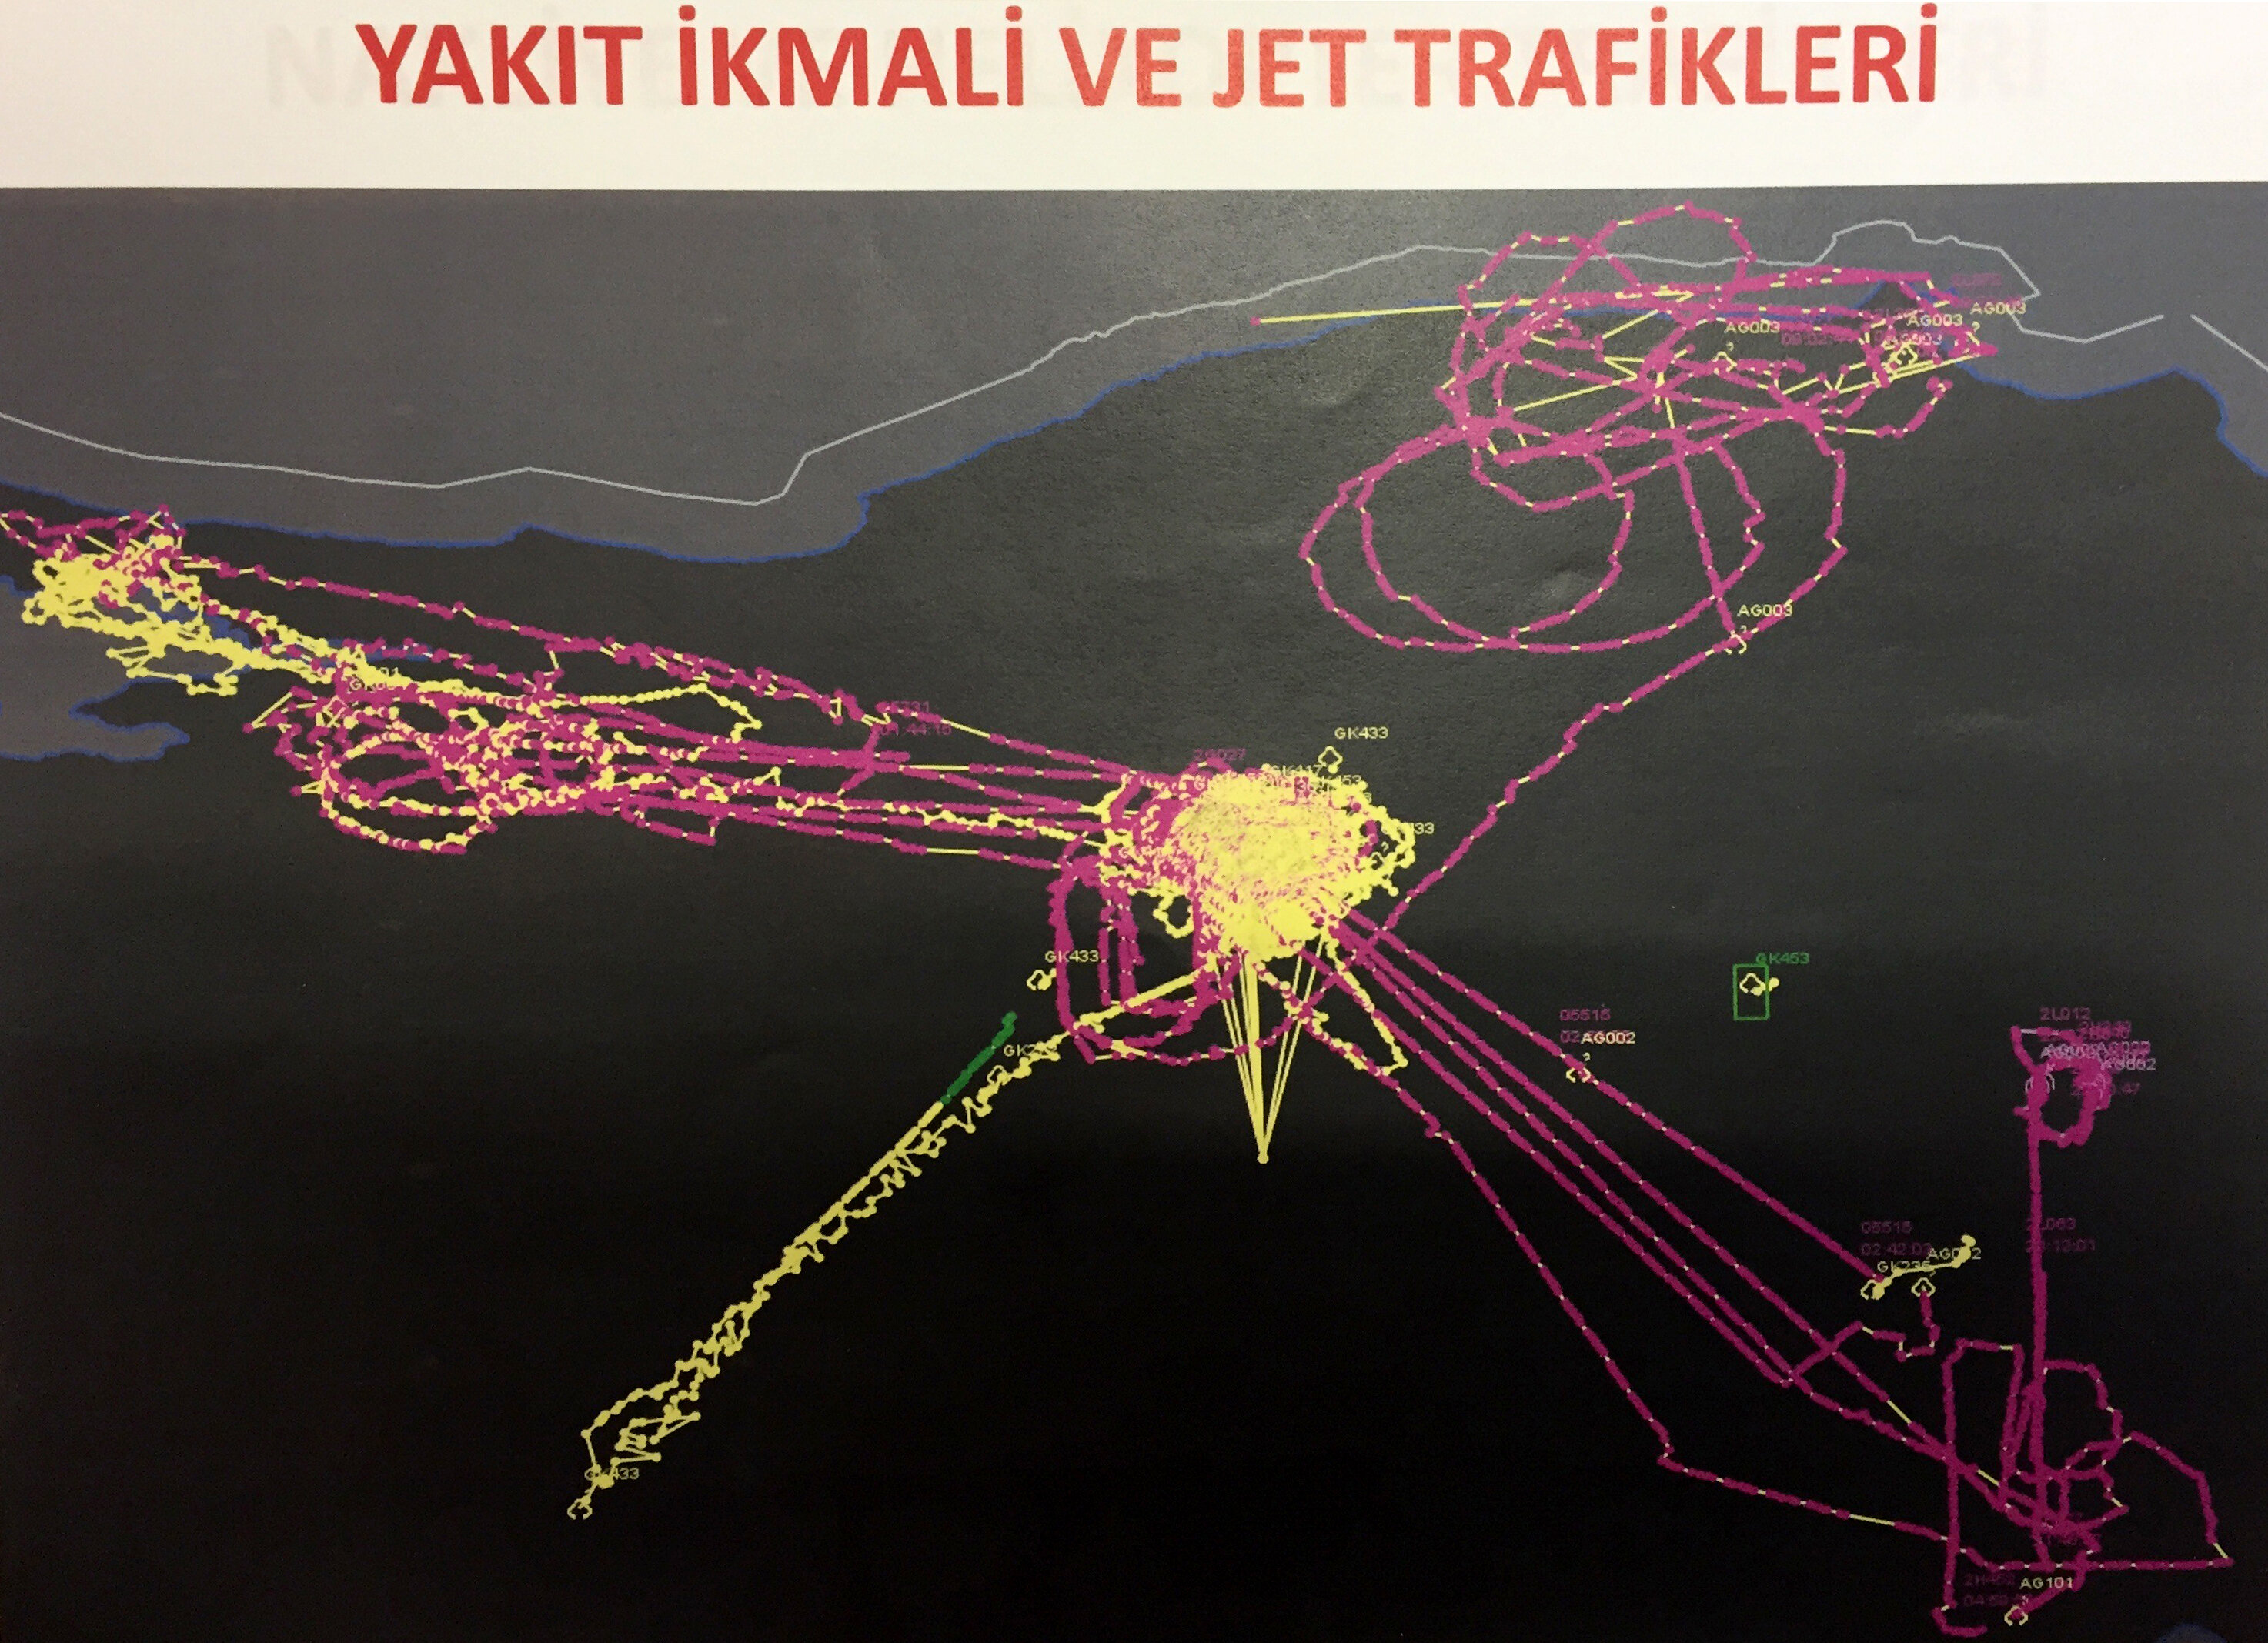 Flight records also show similar heavy traffic over İncirlik Air Base. It was detected that squirts taking off from İncirlik delivered fuel to aircraft used in the coup attempt. Fuel transfers were also indicated in the flight records.